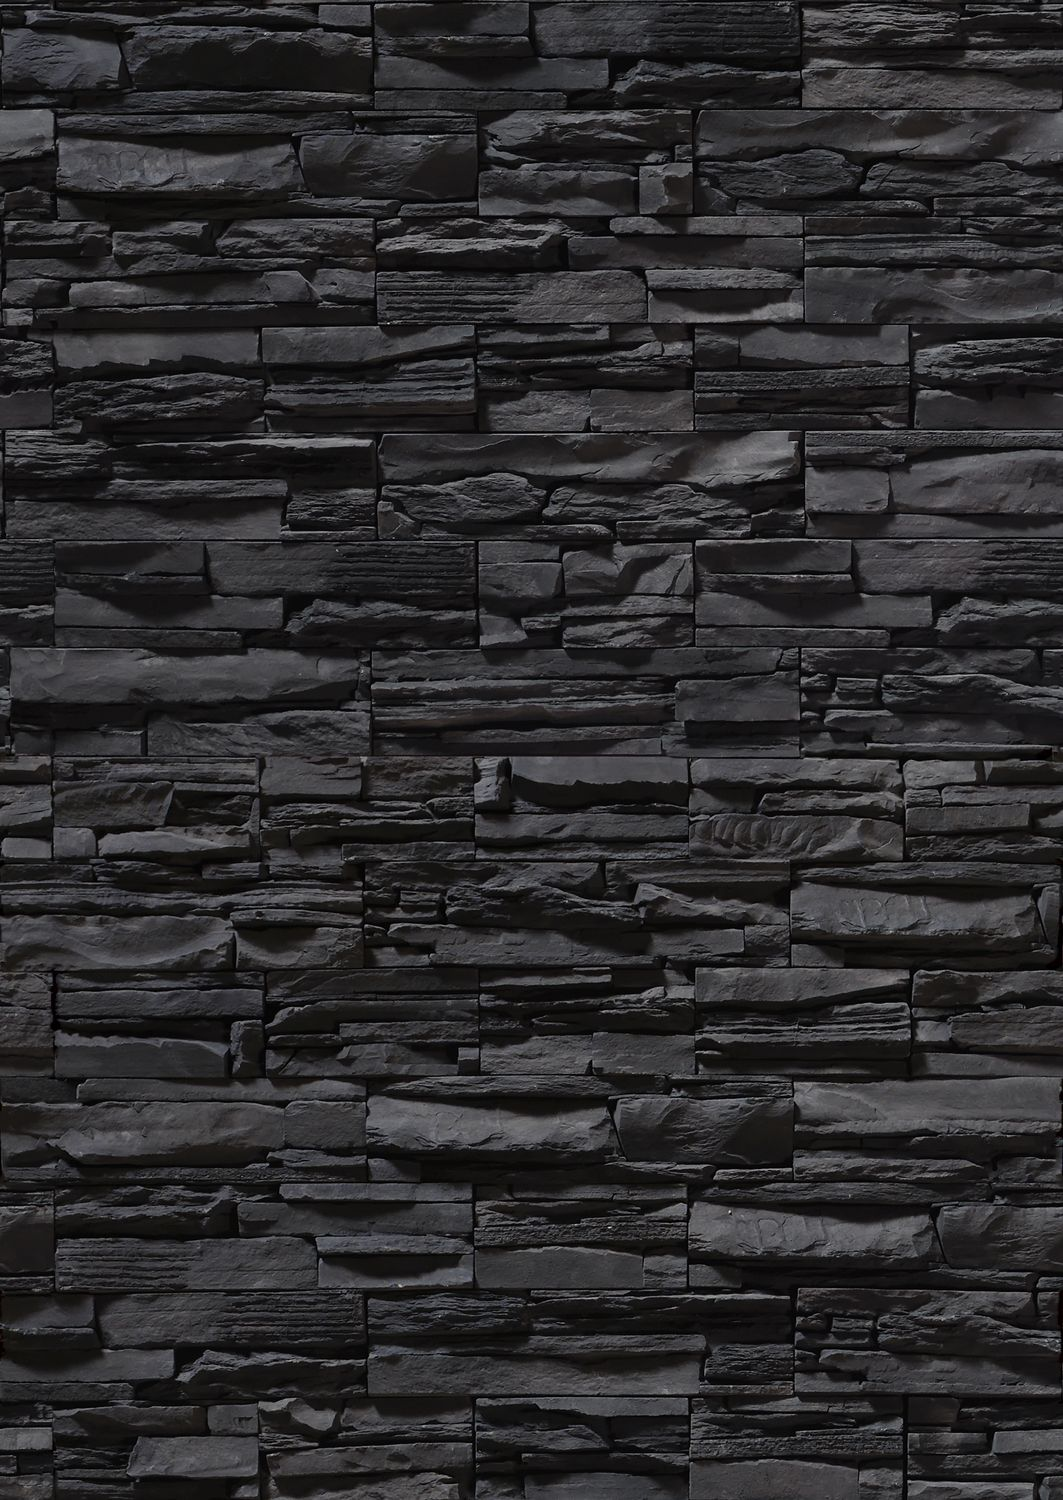 Texture Textures in 2019 Stone wallpaper, Black brick